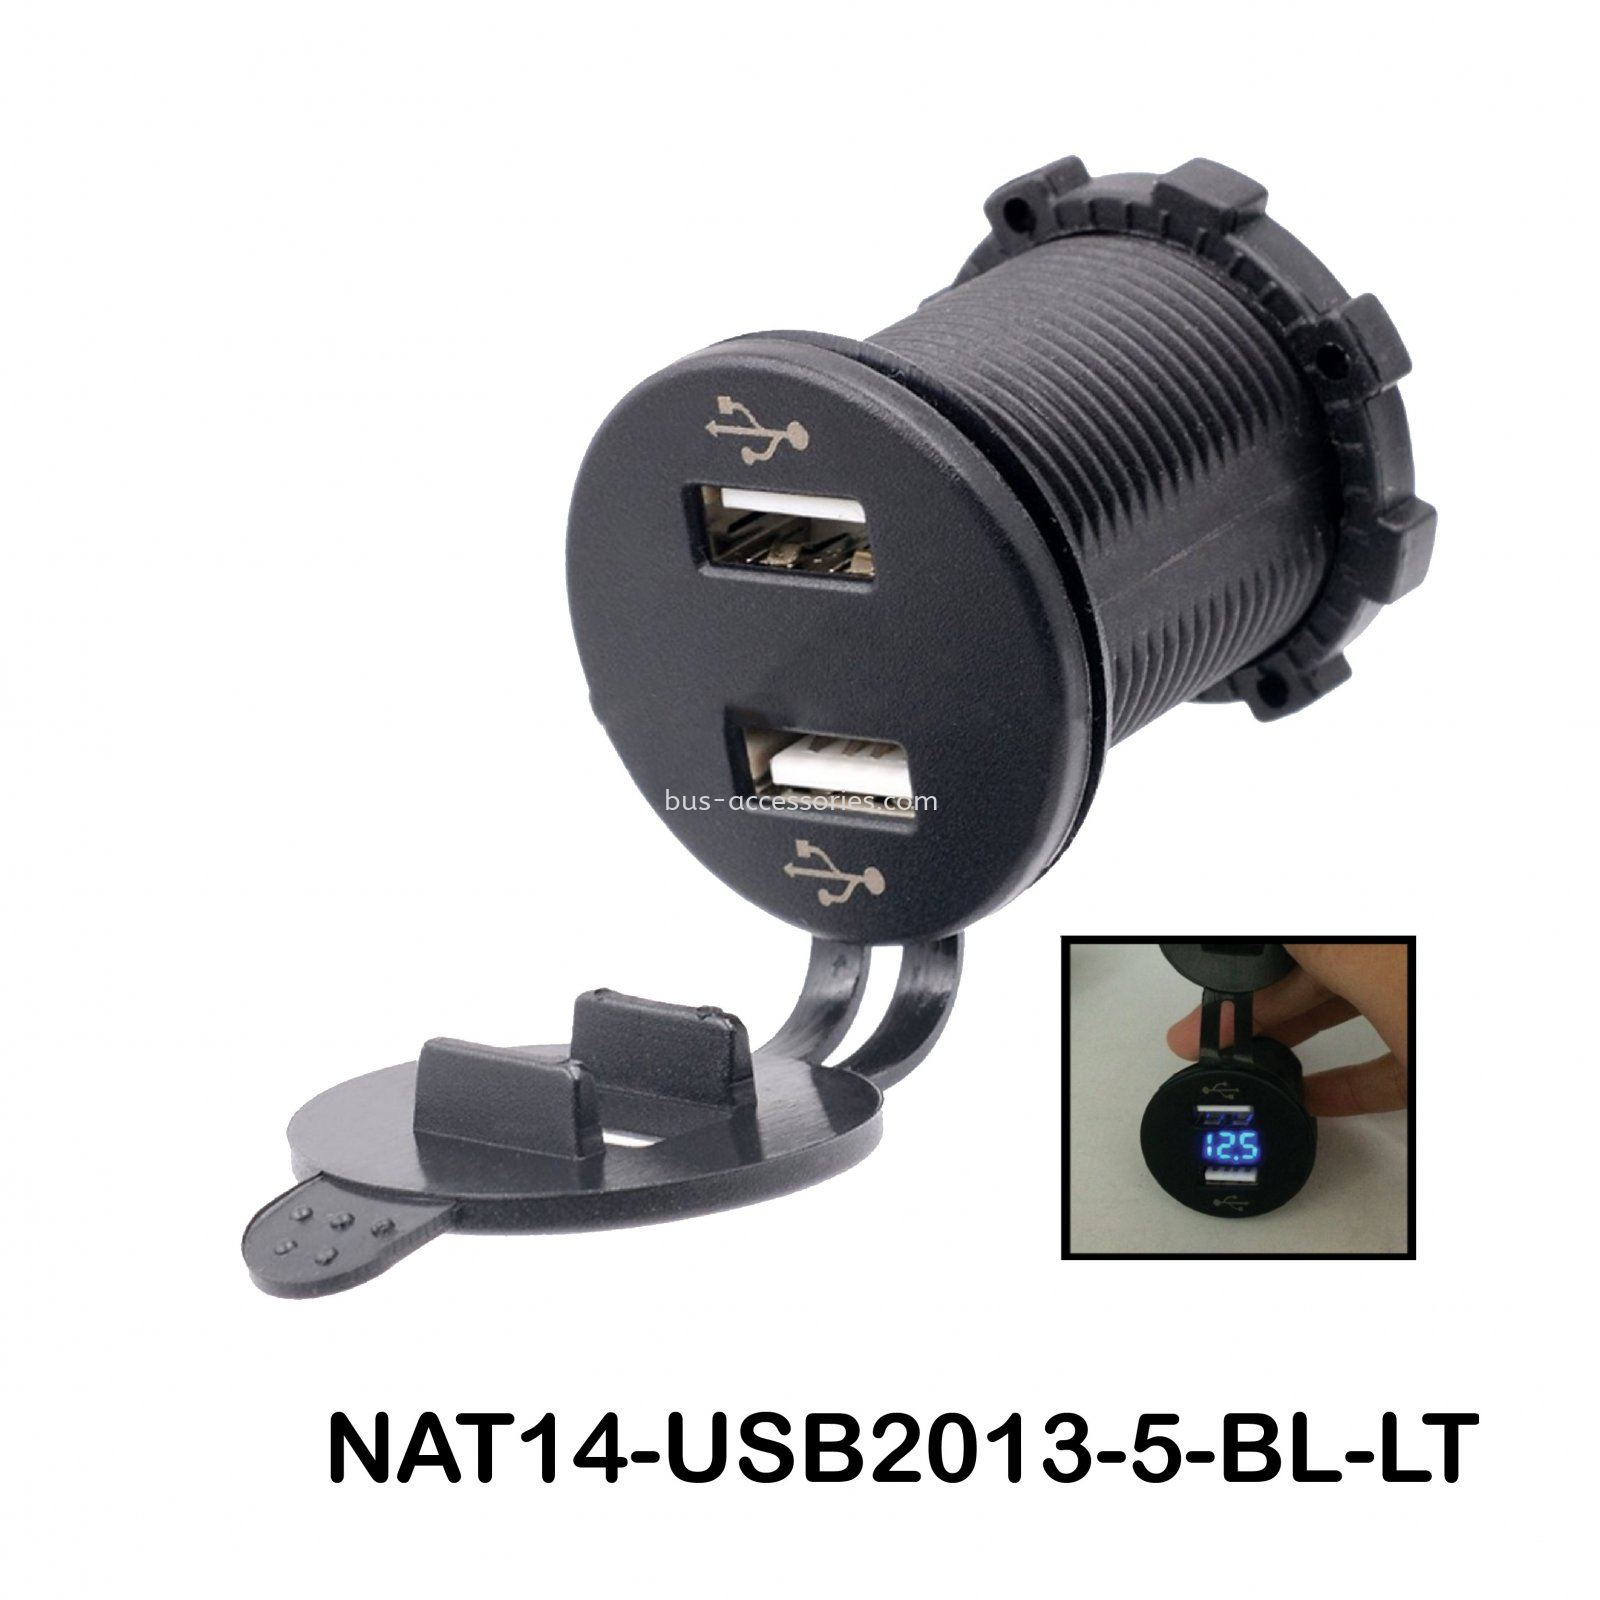 4.2A DUAL USB CHARGER SOCKET & VOLTMETER (BLUE)